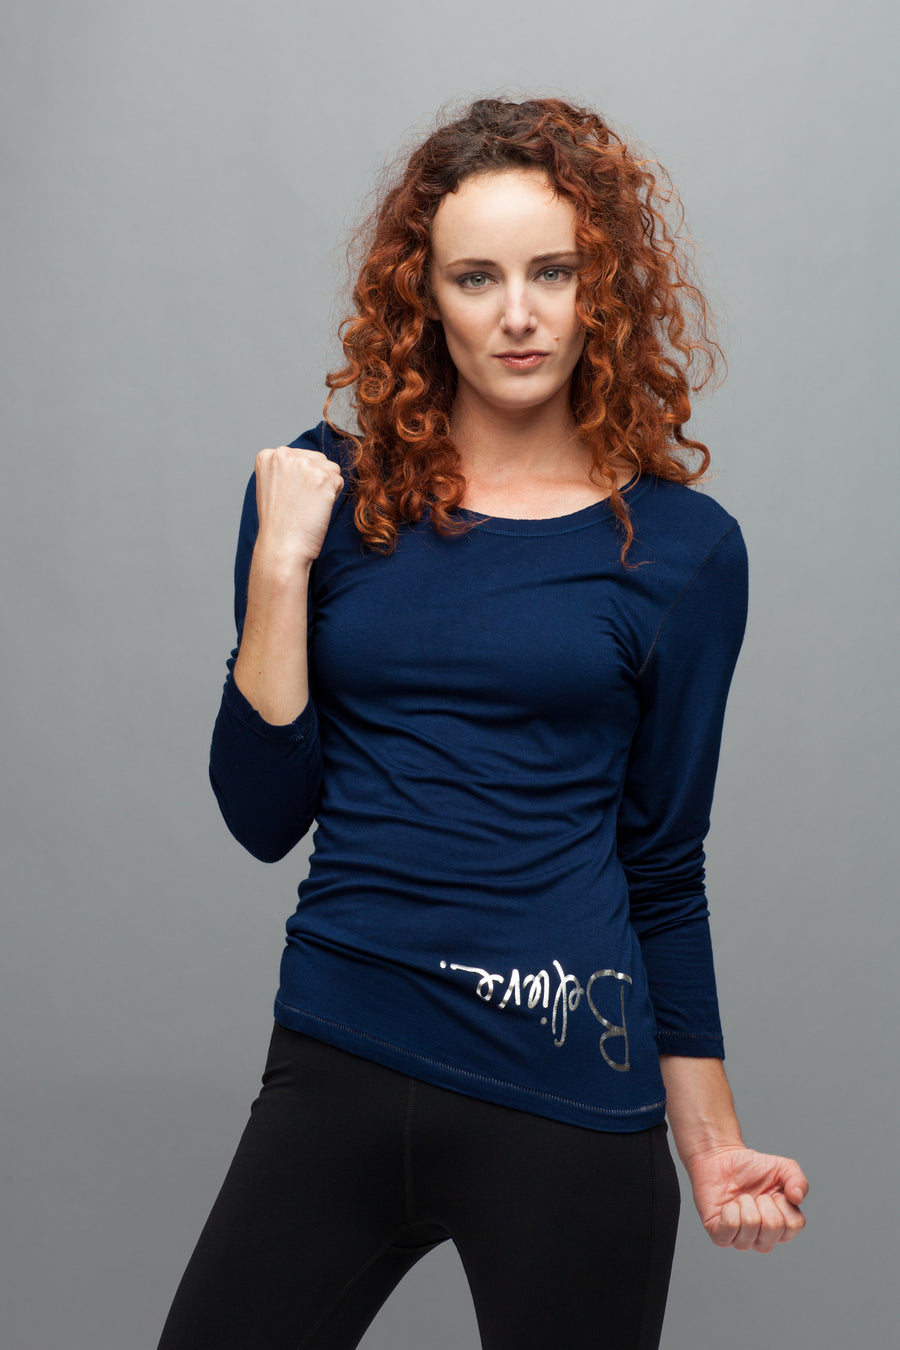 new selection super popular best choice Exercise Tops for Women | Women's Tops | Women's Workout ...